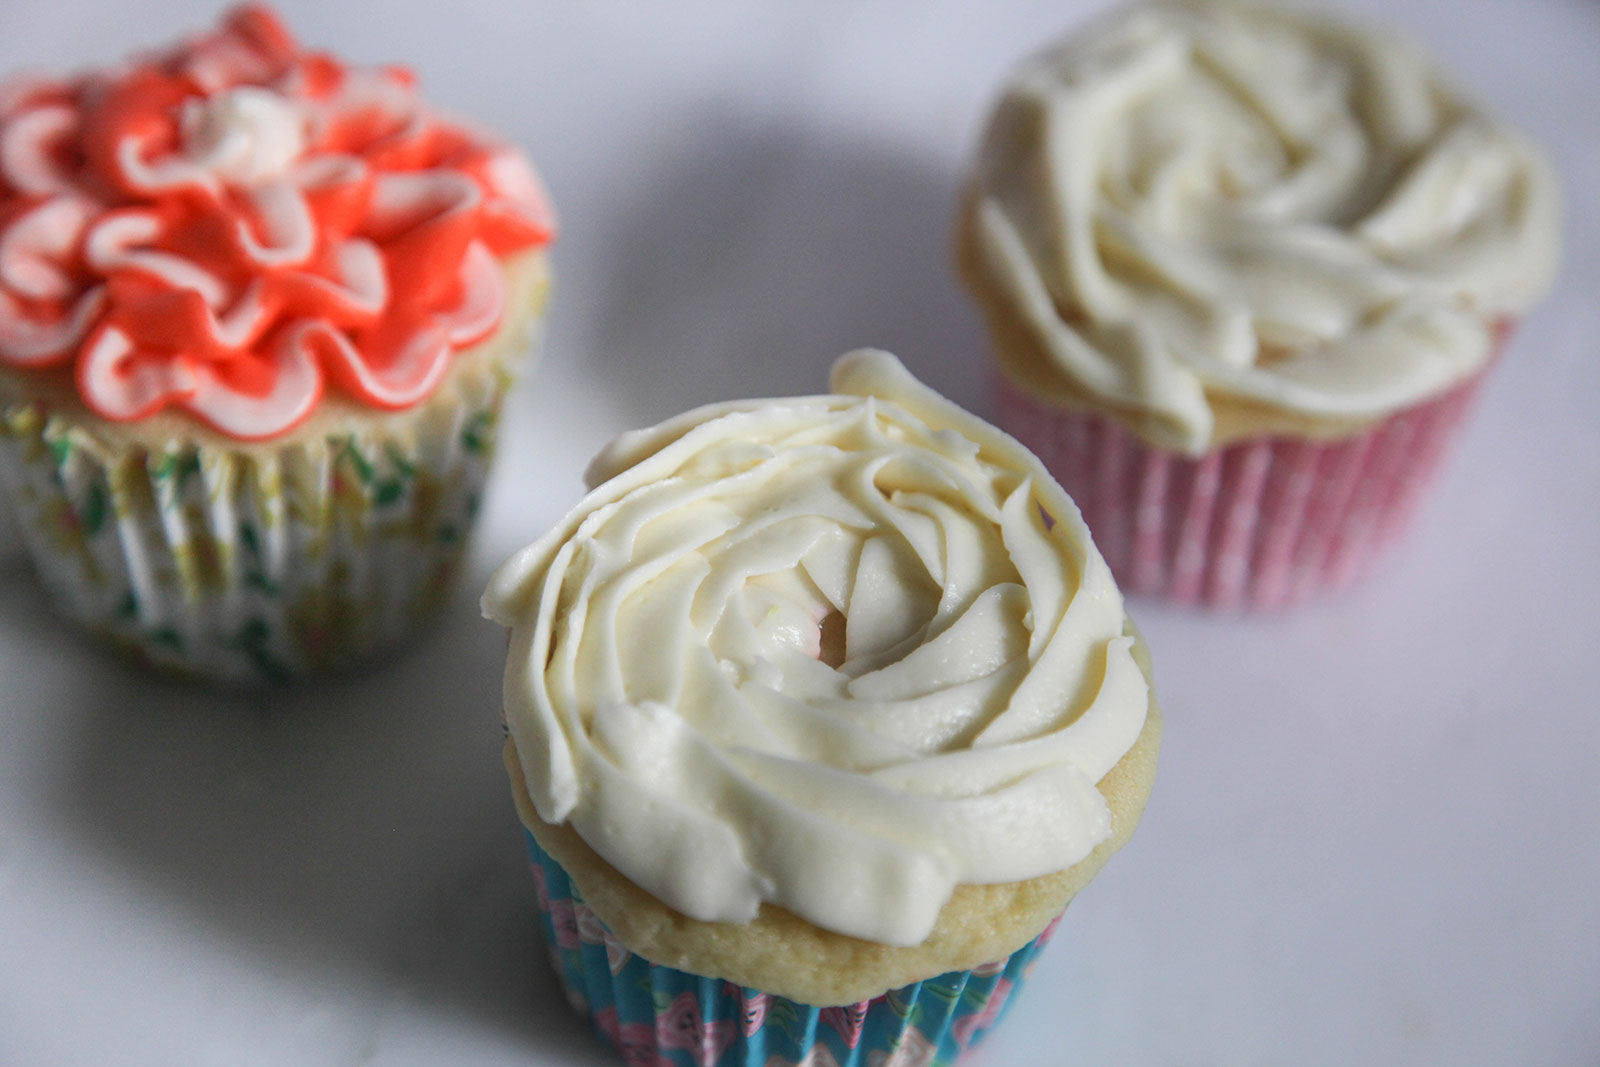 moist fluffy cupcakes with white rosette decoration